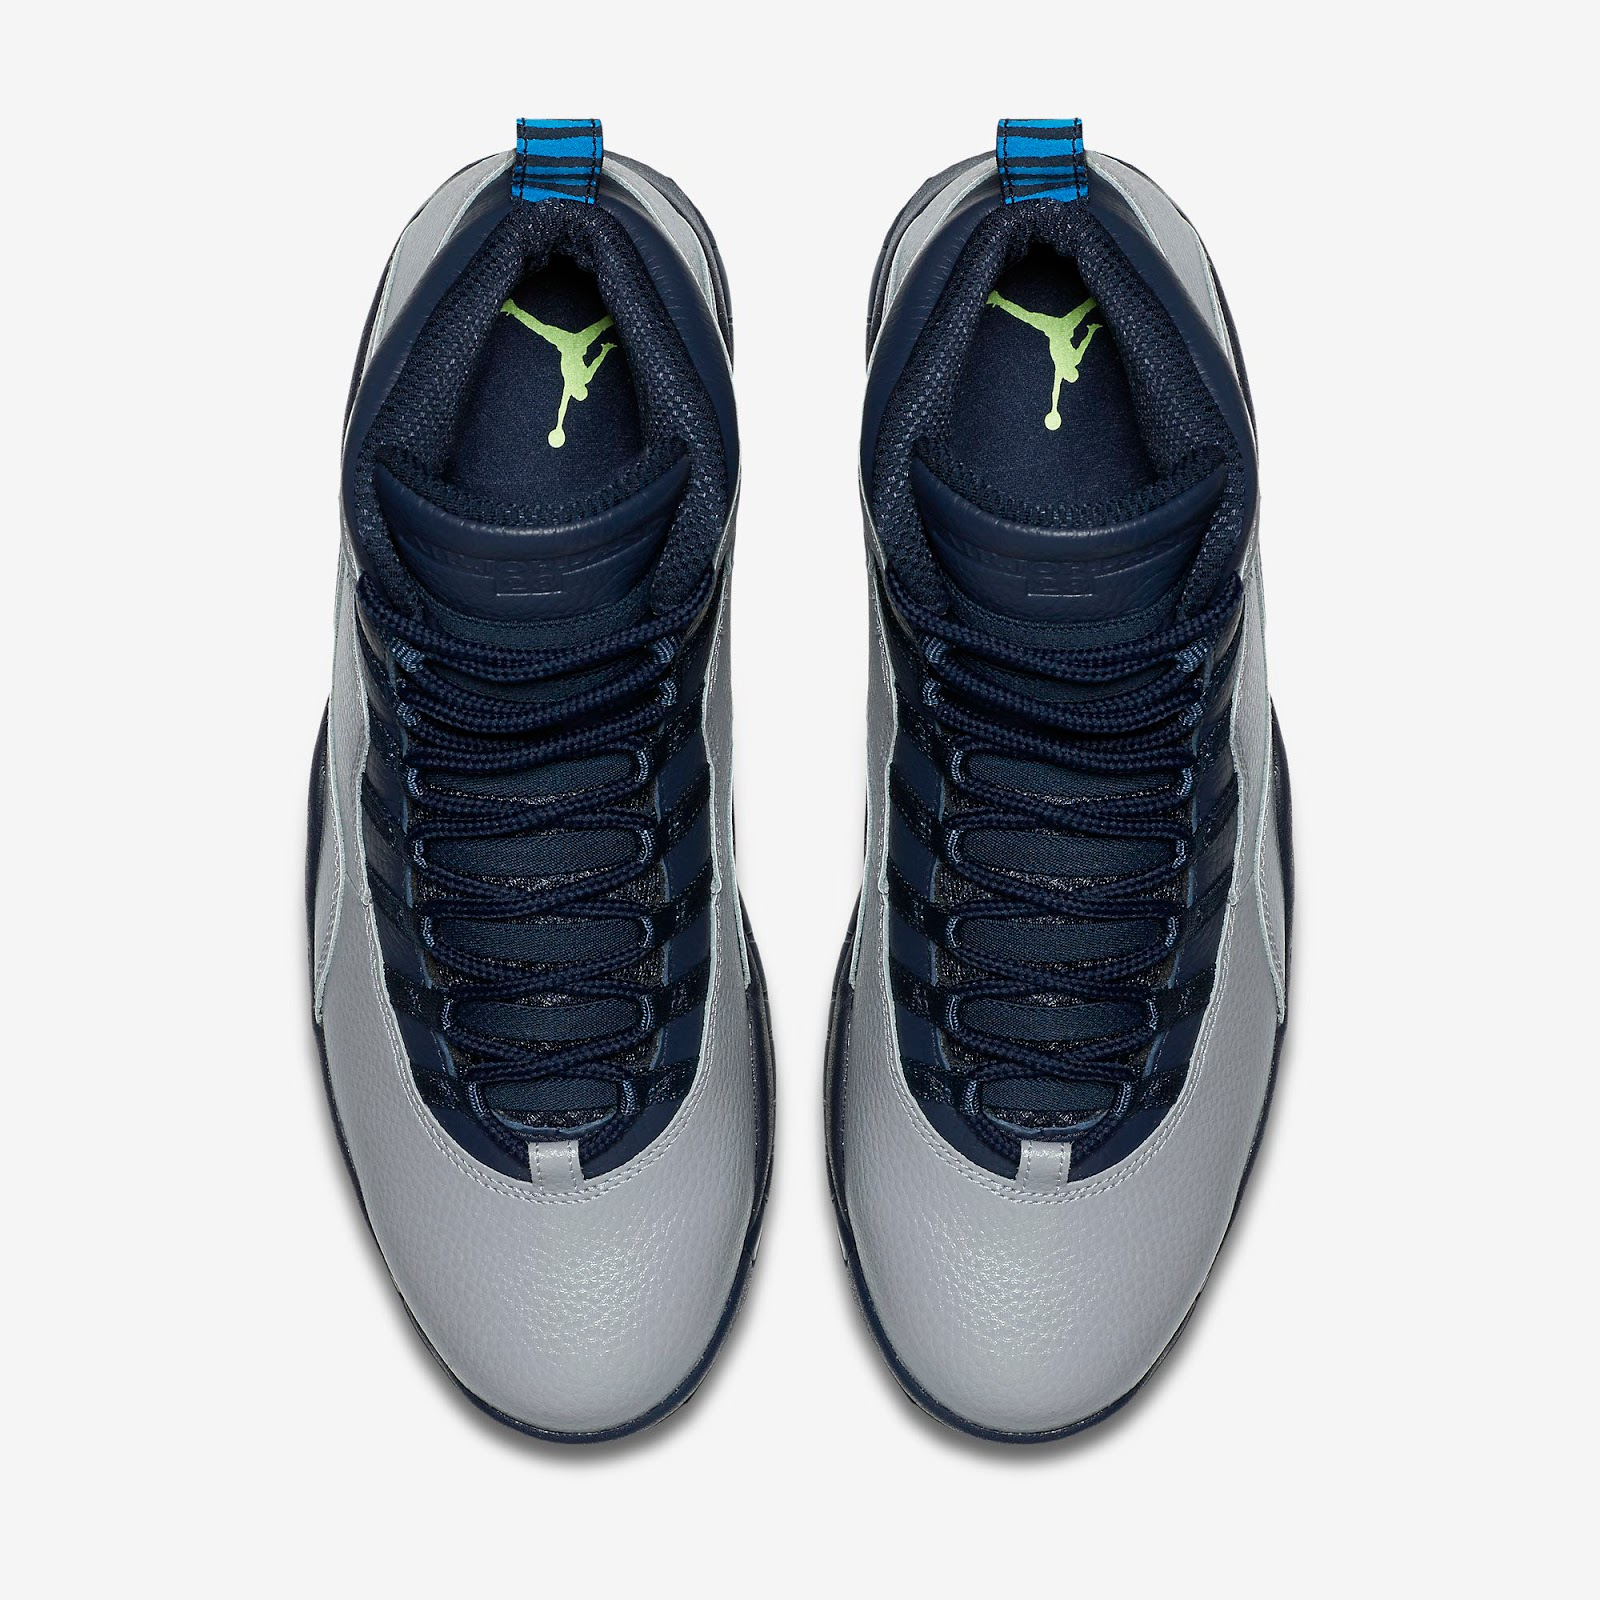 outlet store 687e7 4aed0 ajordanxi Your  1 Source For Sneaker Release Dates  Air Jordan 10 ...